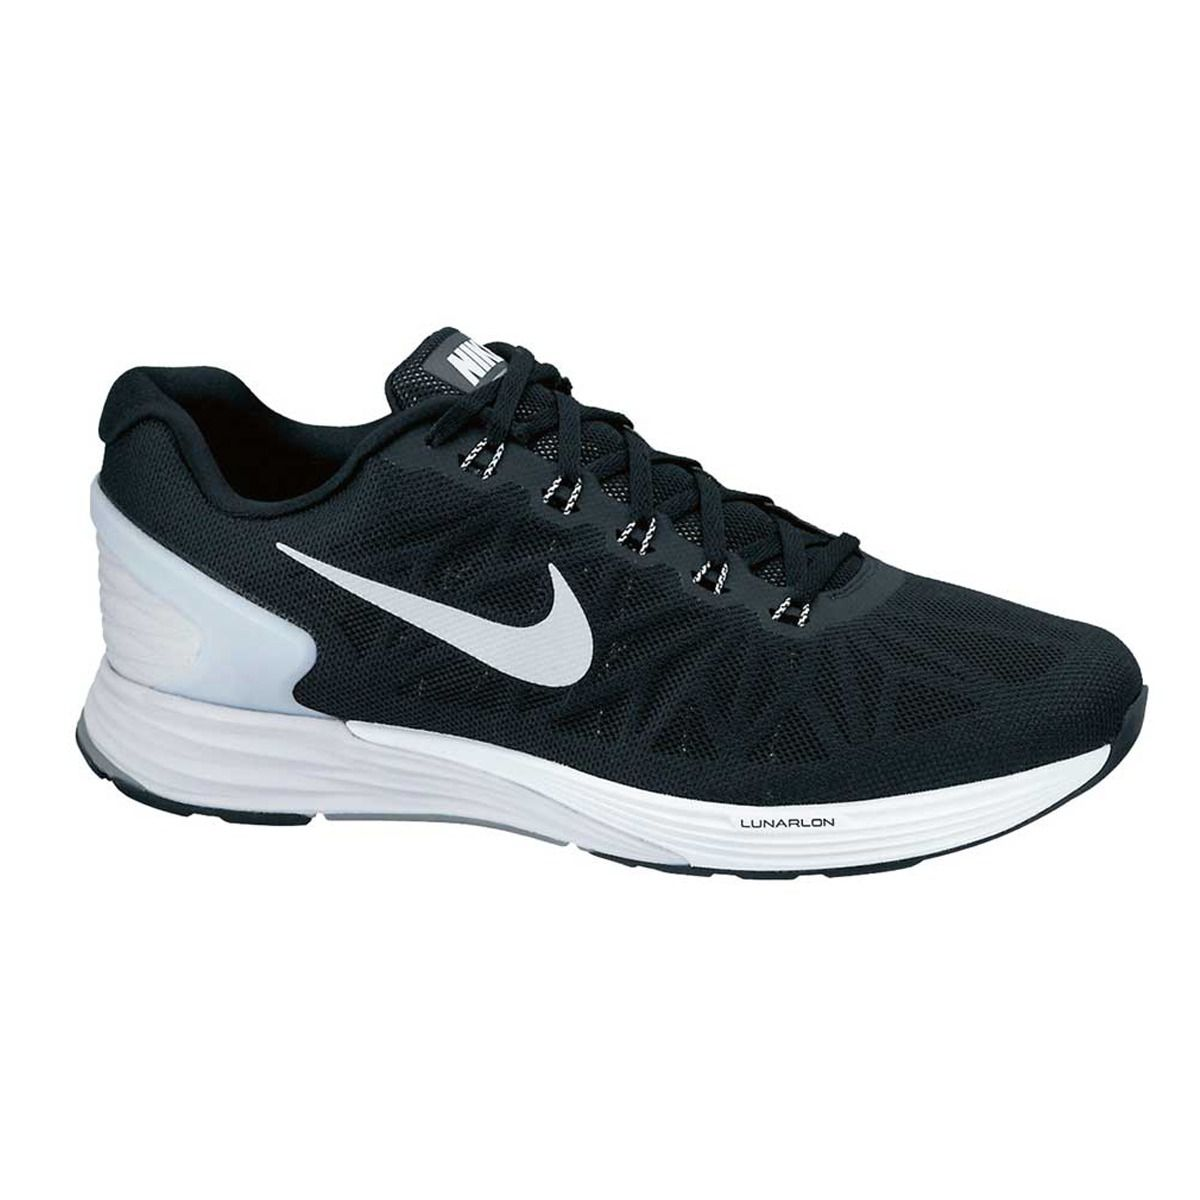 5342c19e81b6 Nike Lunarglide 6 Men s Running Shoes